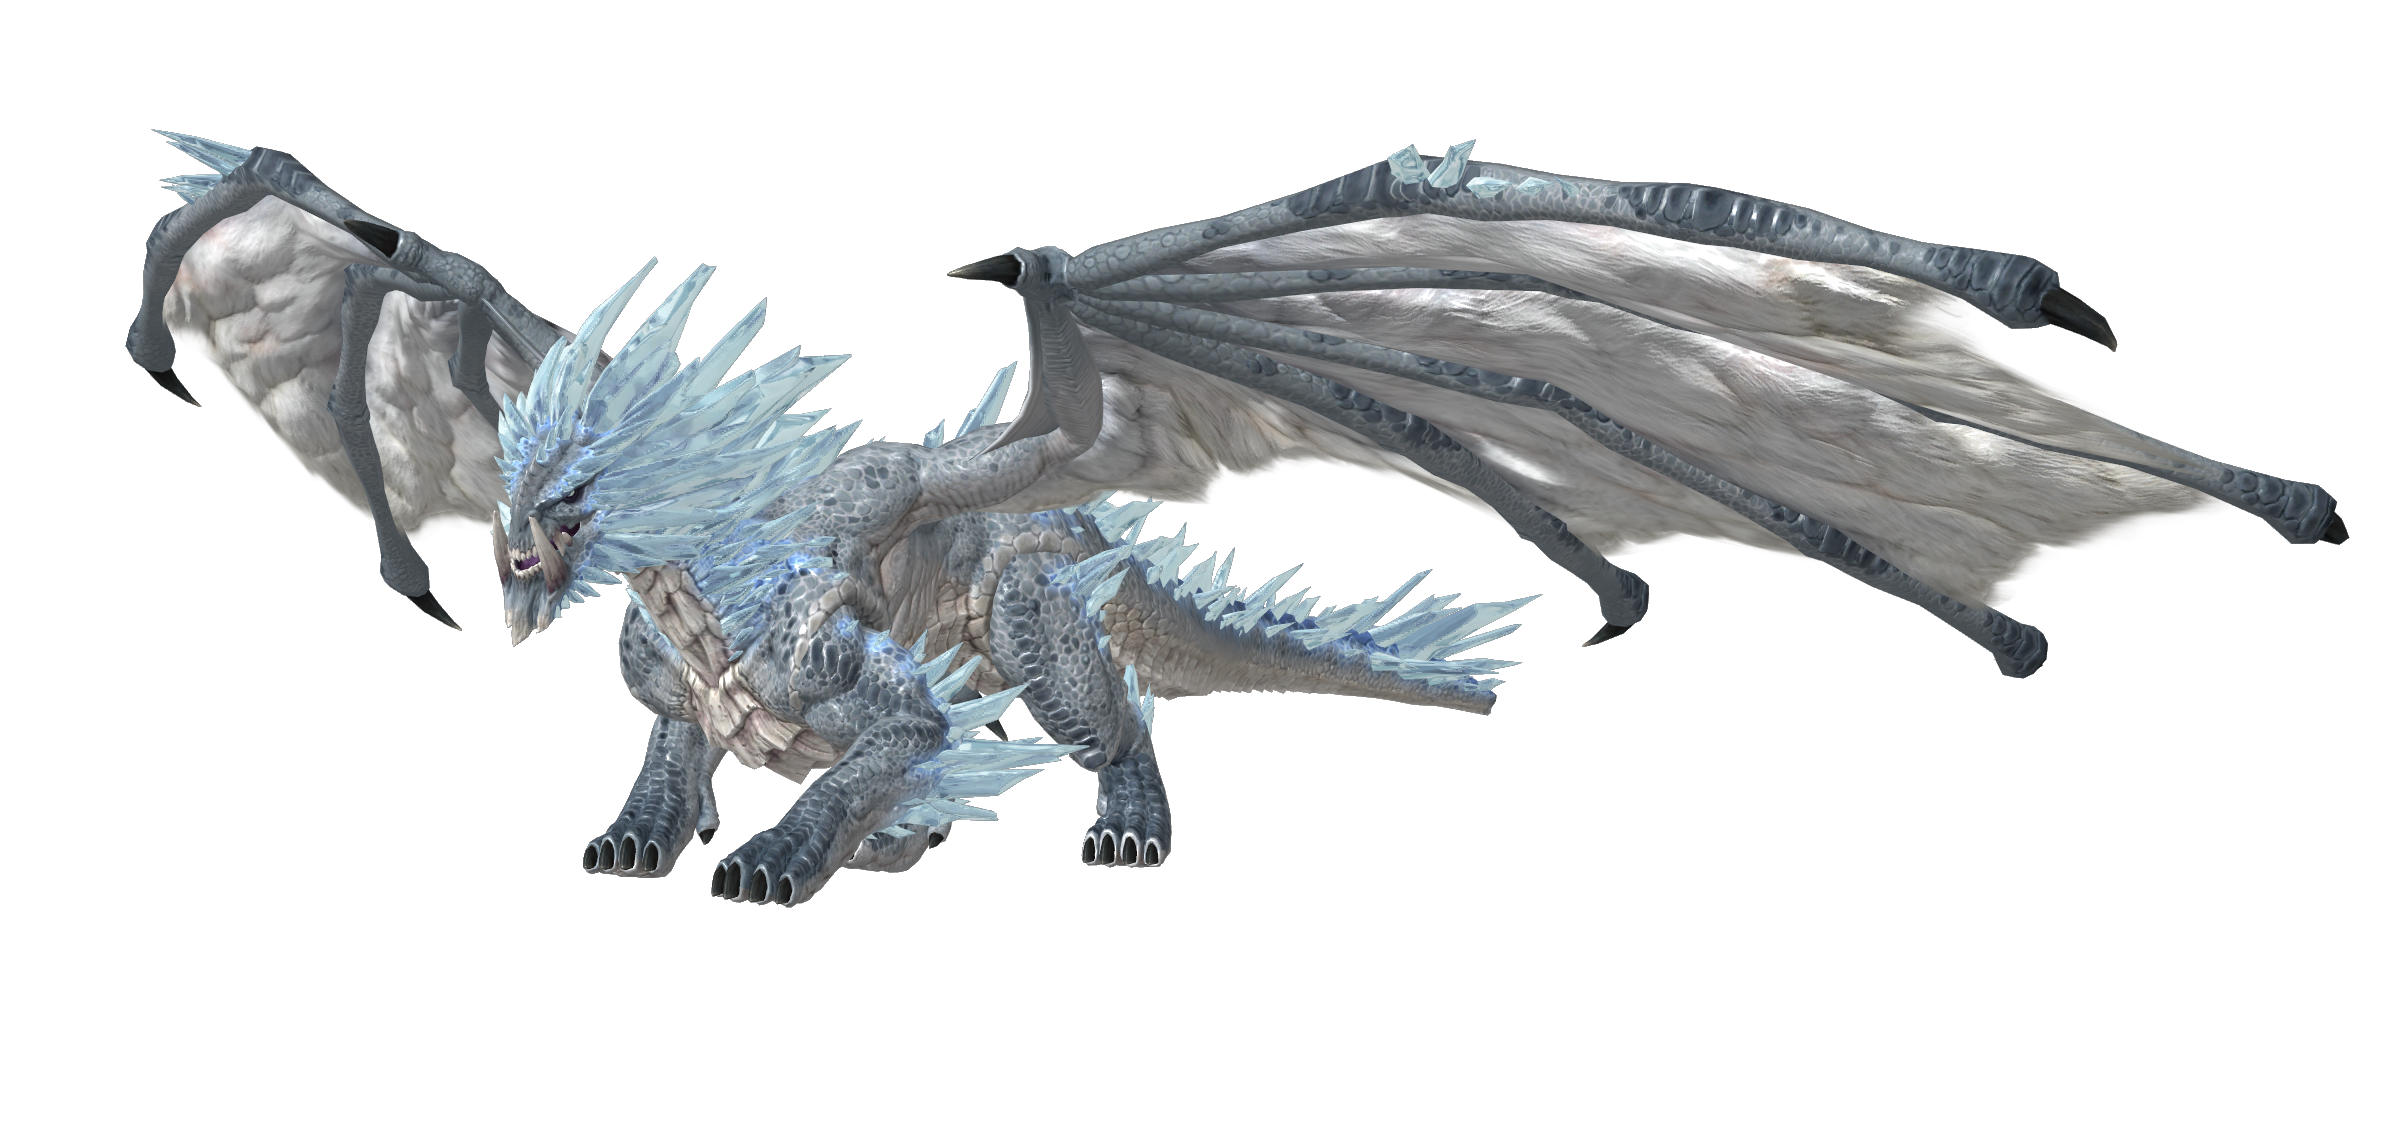 Ice Dragon PNG Image Transparent Background.